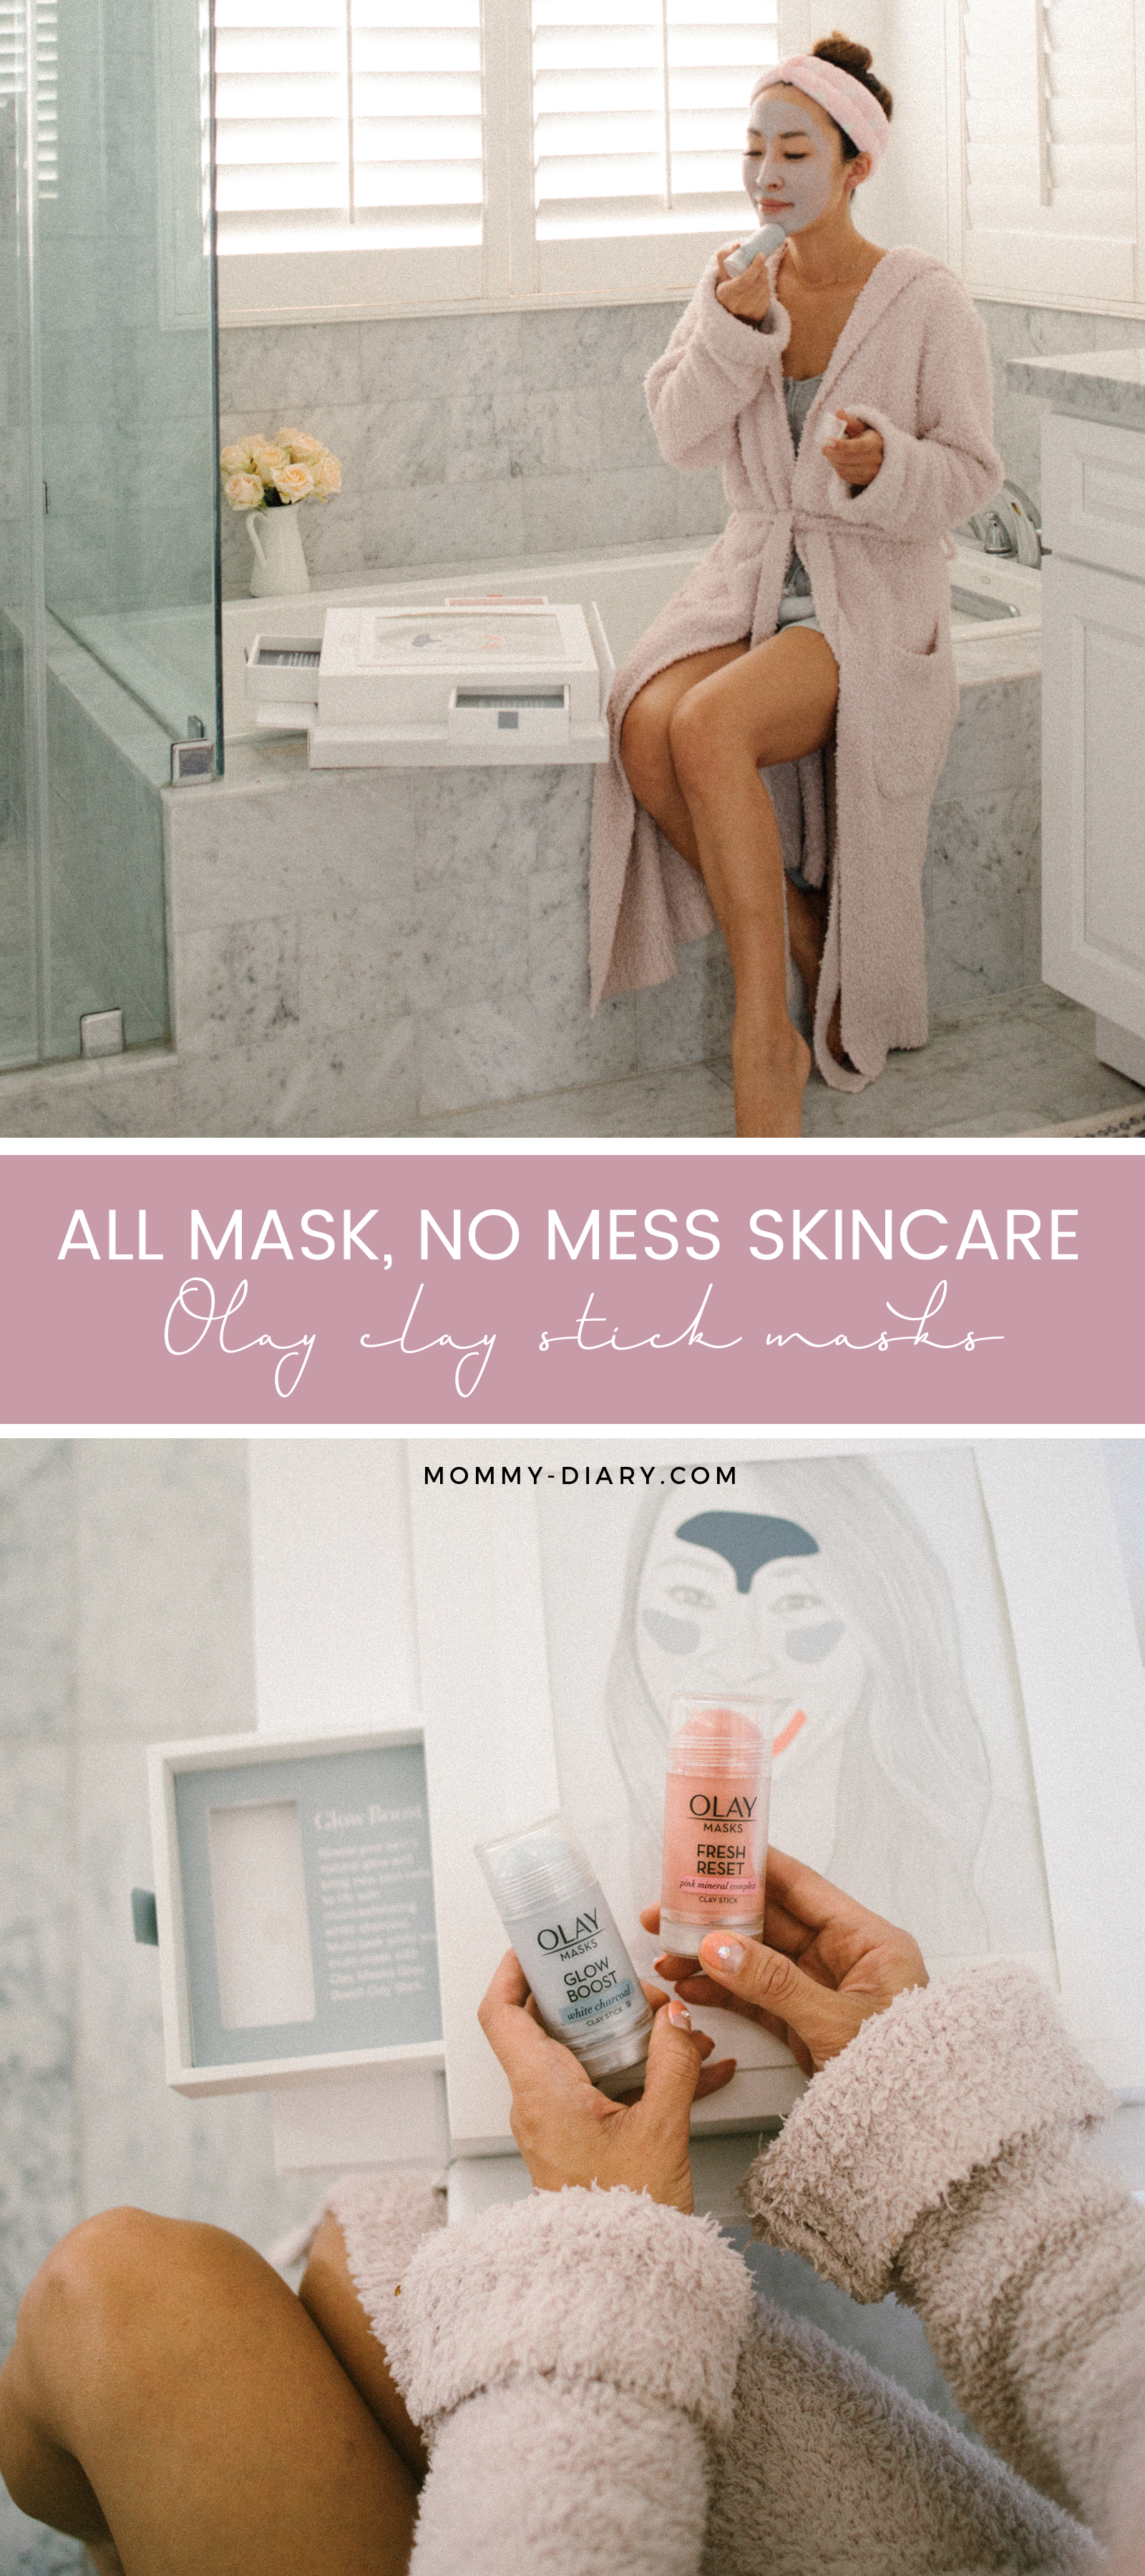 olay-clay-stick-mask-pinterest